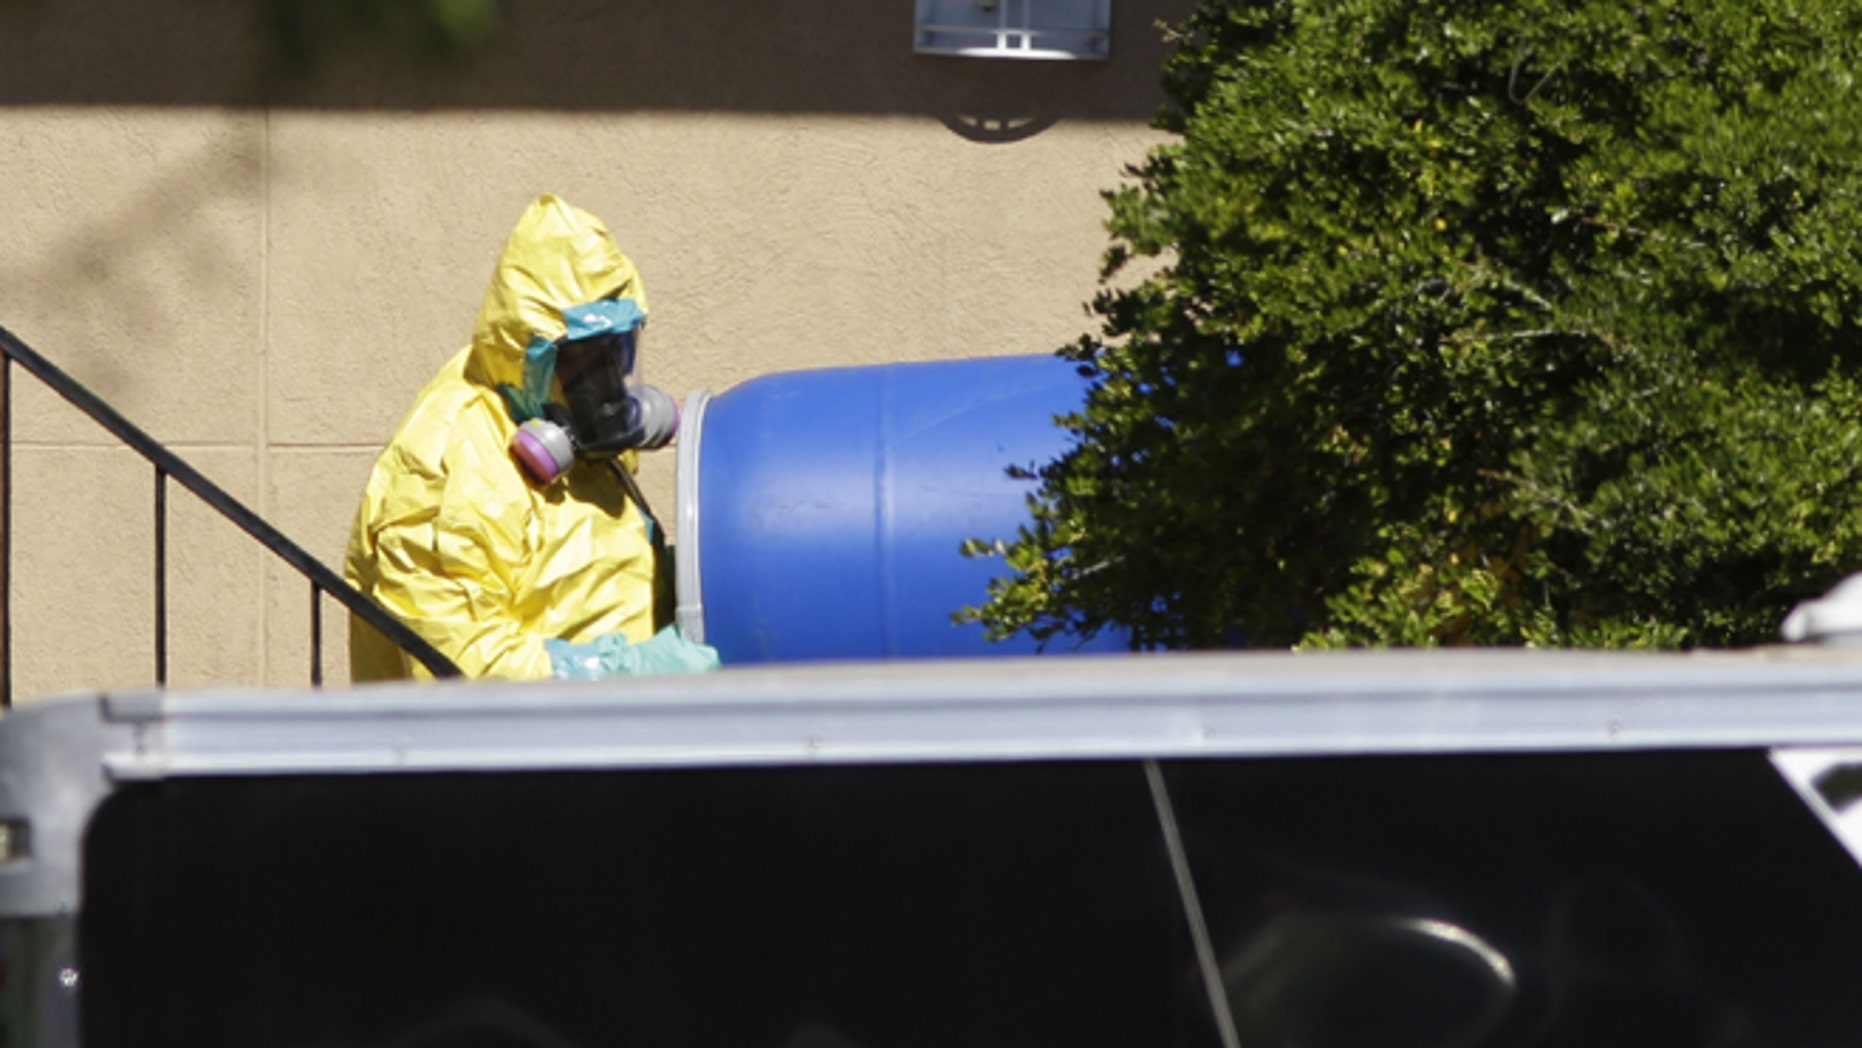 Oct. 3, 2014: A hazardous material cleaner removes a blue barrel from the apartment in Dallas. (AP)